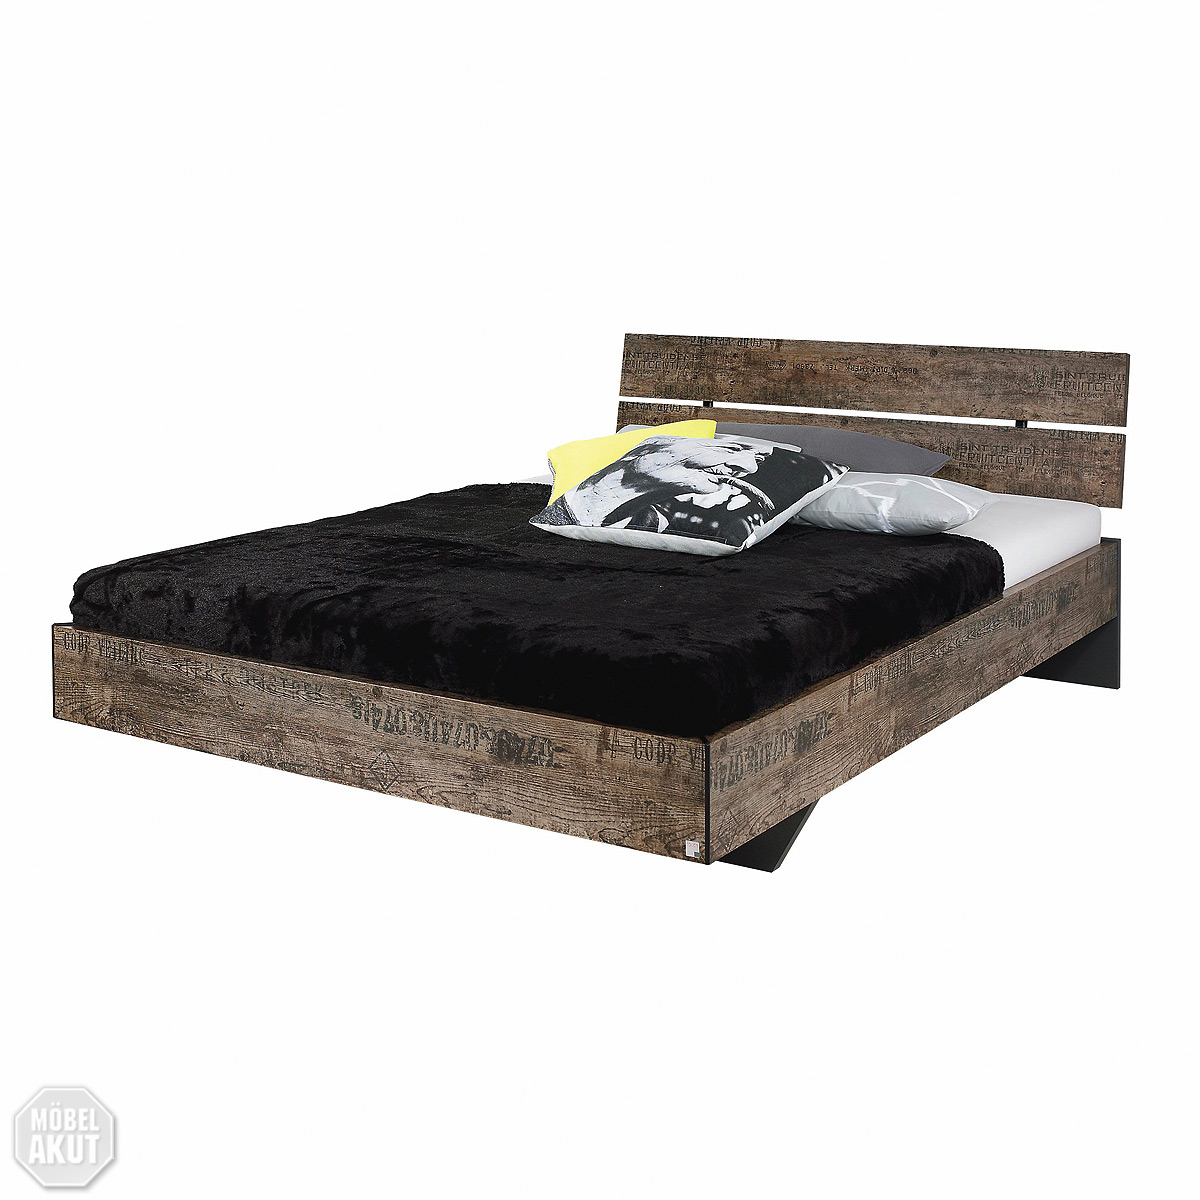 bett sumatra doppelbett schlafzimmerbett in schwarz braun vintage look 140 ebay. Black Bedroom Furniture Sets. Home Design Ideas